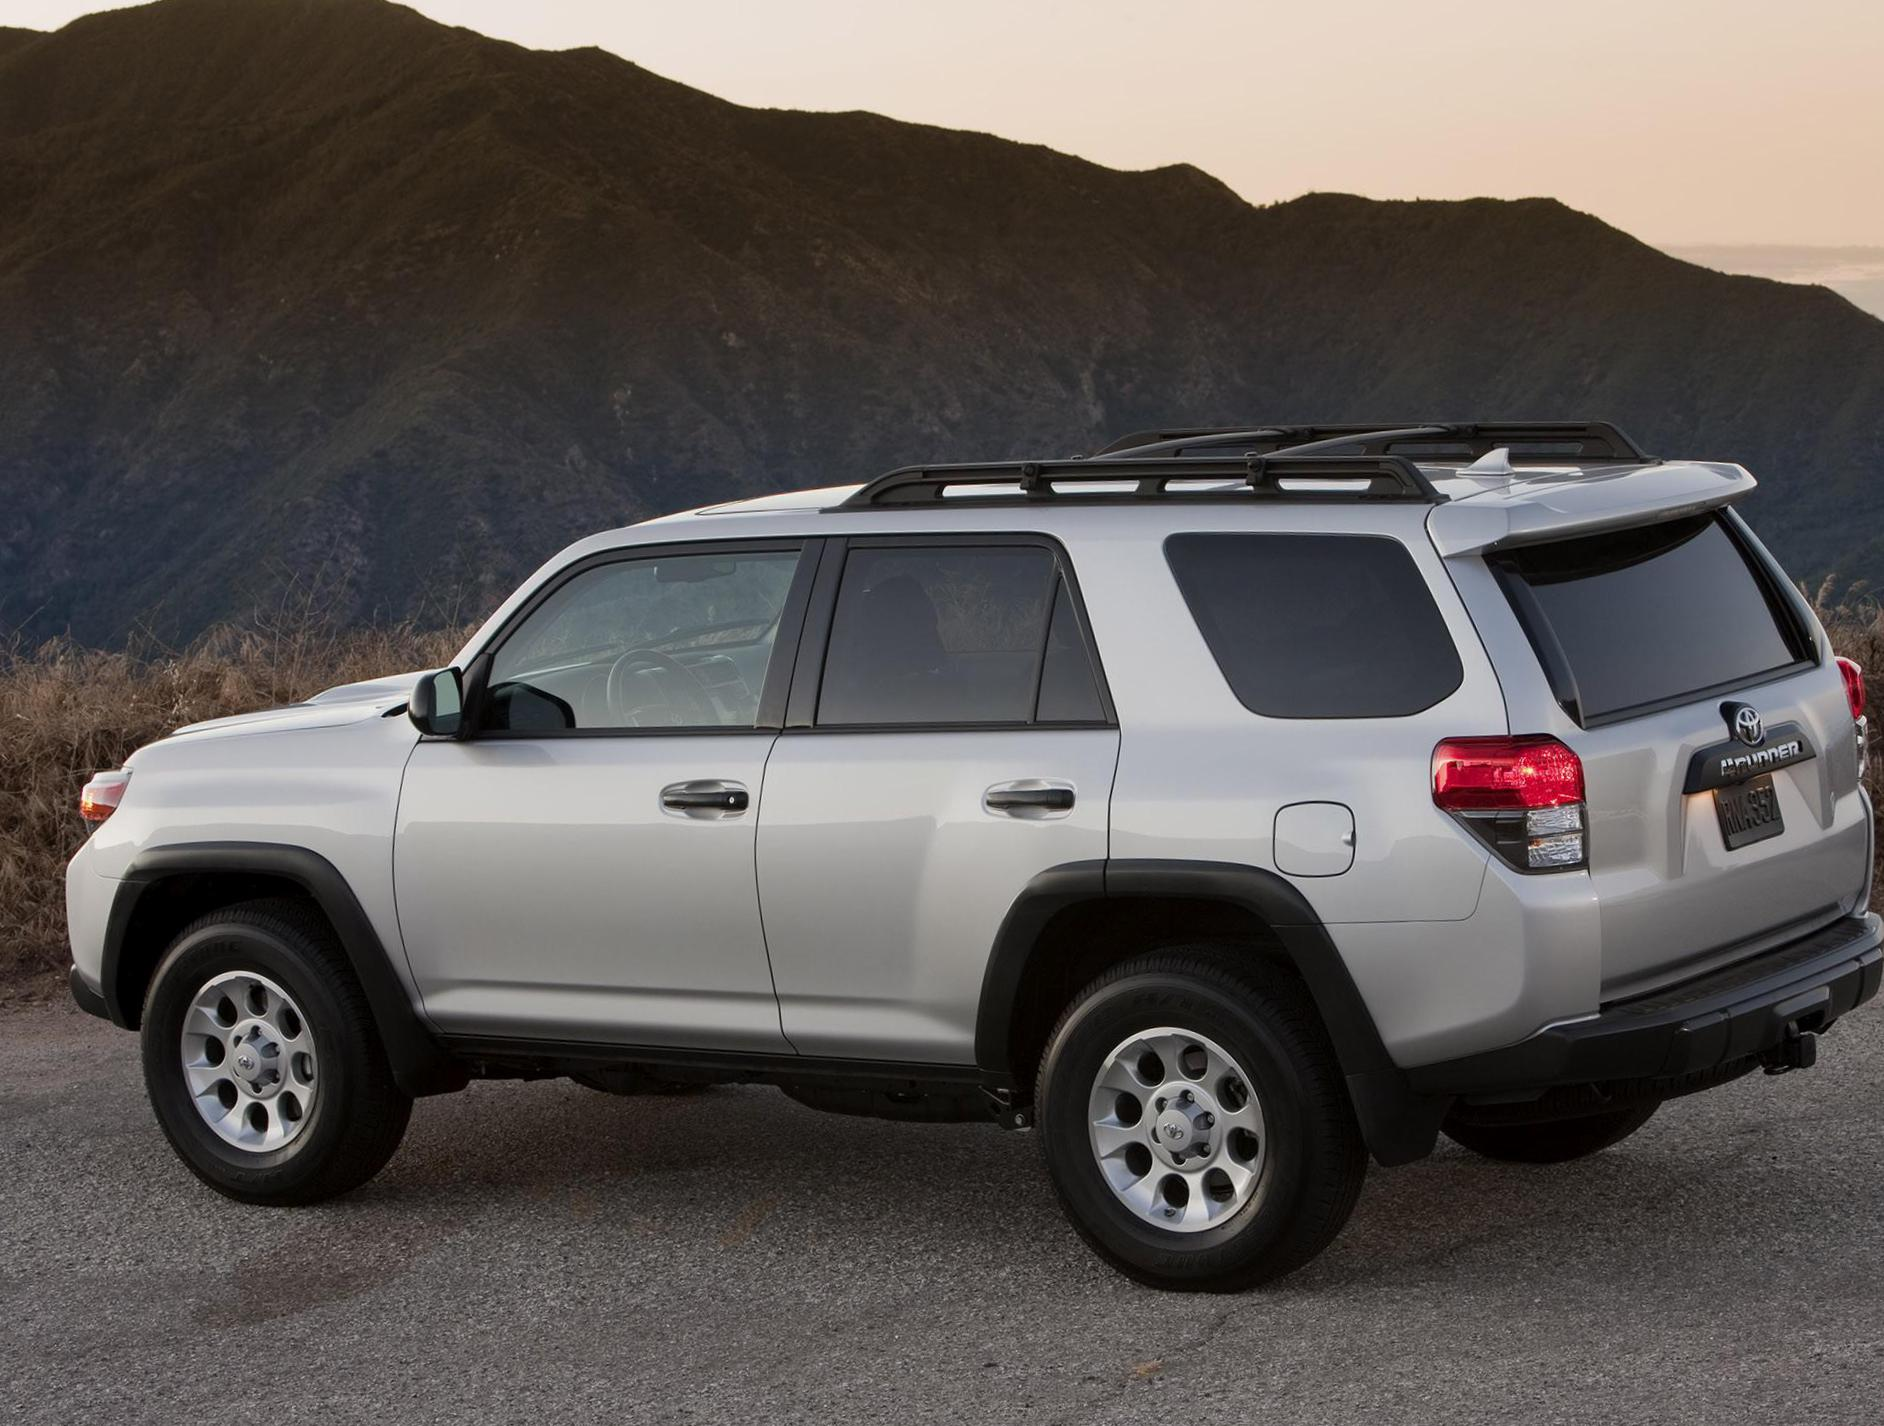 Toyota 4Runner model 2009